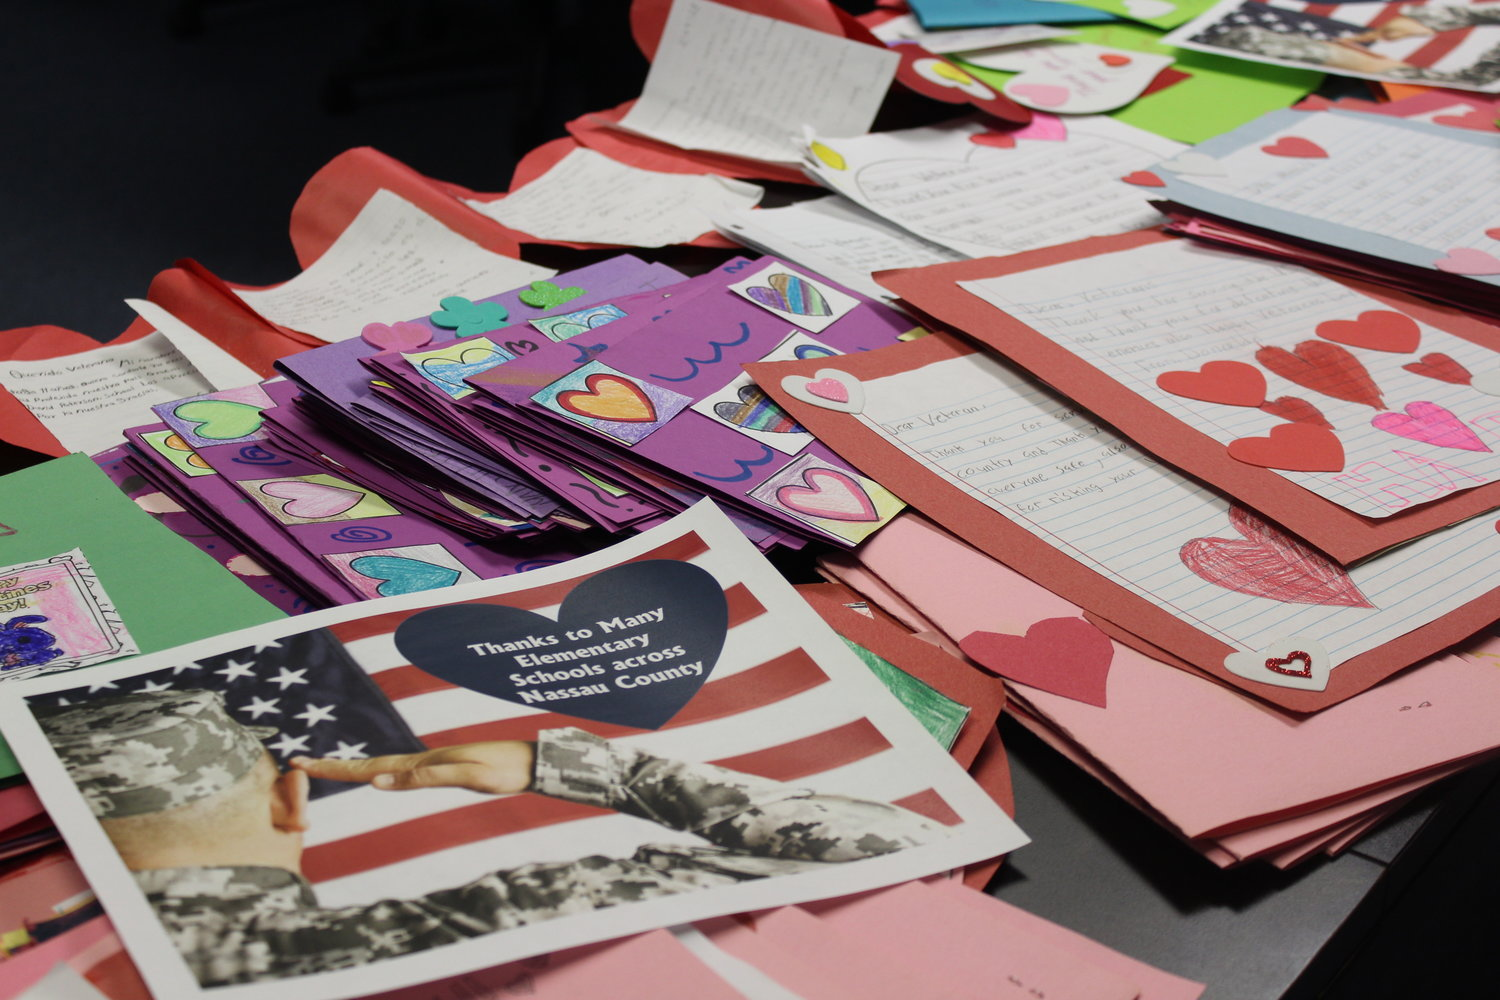 Genine Chiano collected more than 100 Valentine's Day cards from various Long Island organizations.